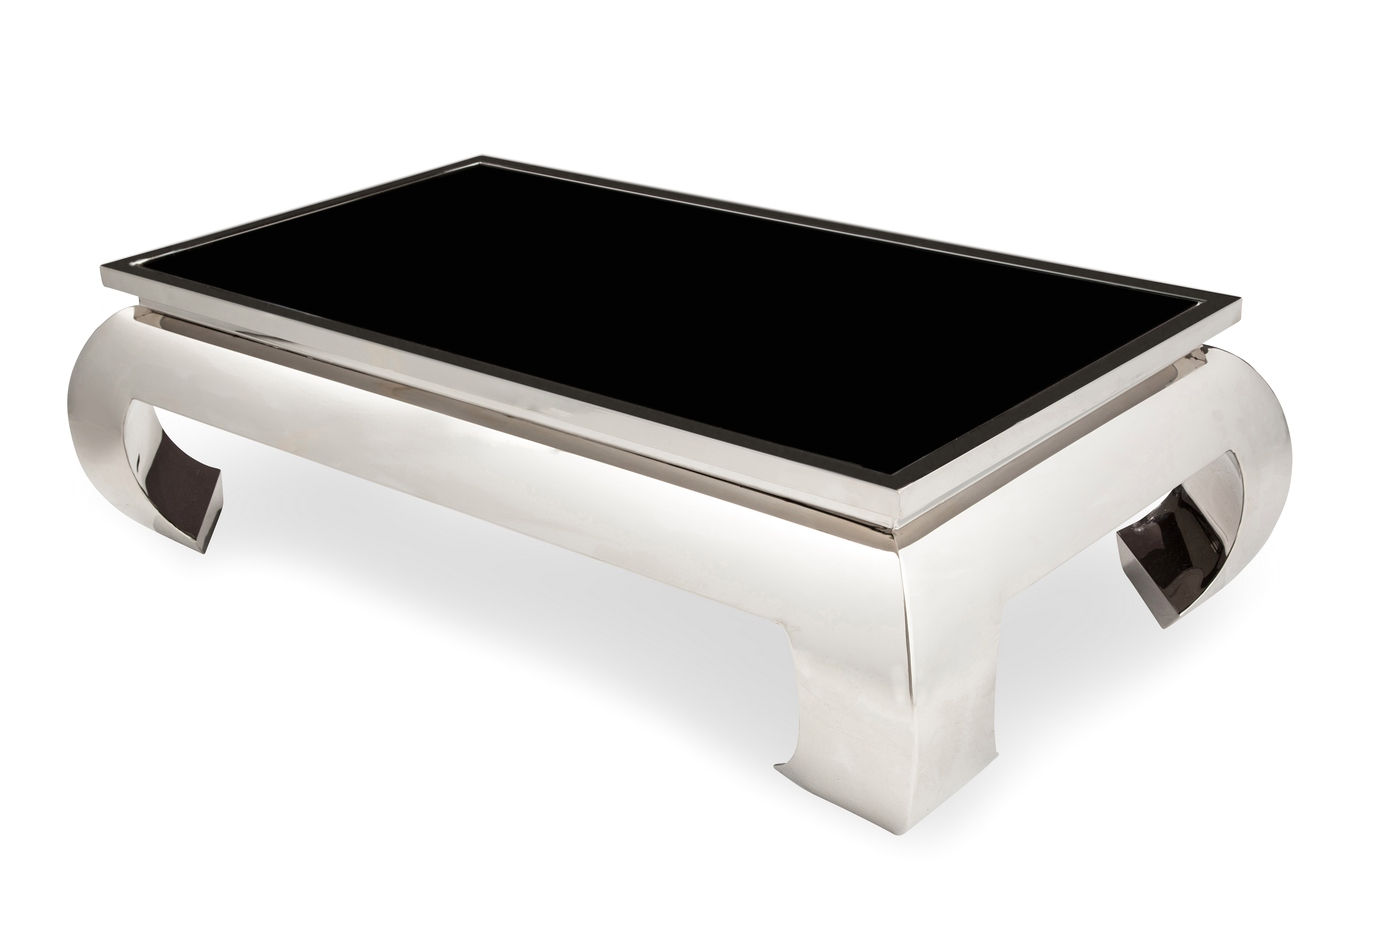 pietro ultra modern coffee table with glass top and silver finish. Black Bedroom Furniture Sets. Home Design Ideas